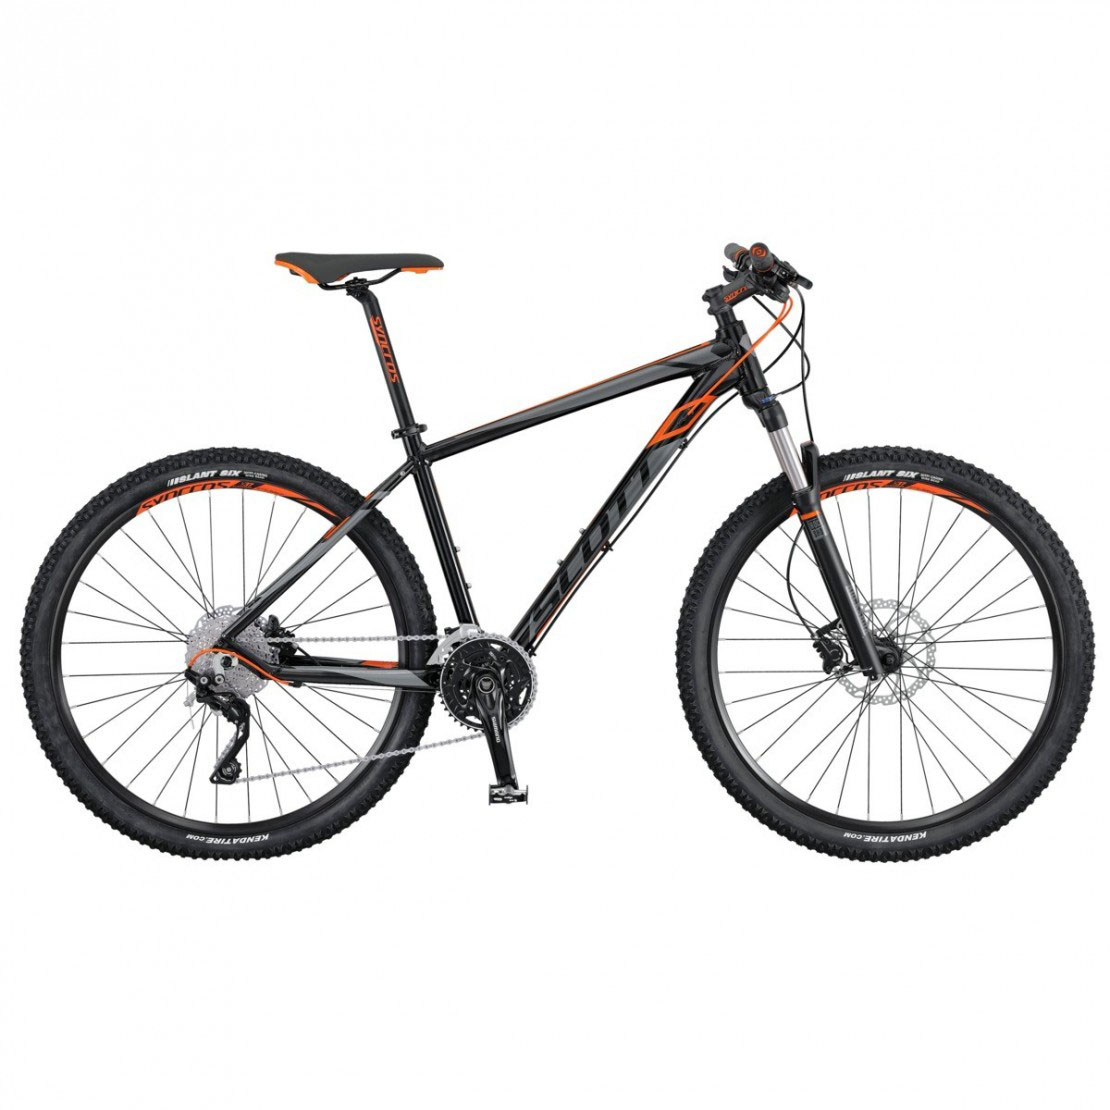 Aspect 910 2017 - 29er Mountain Bikes